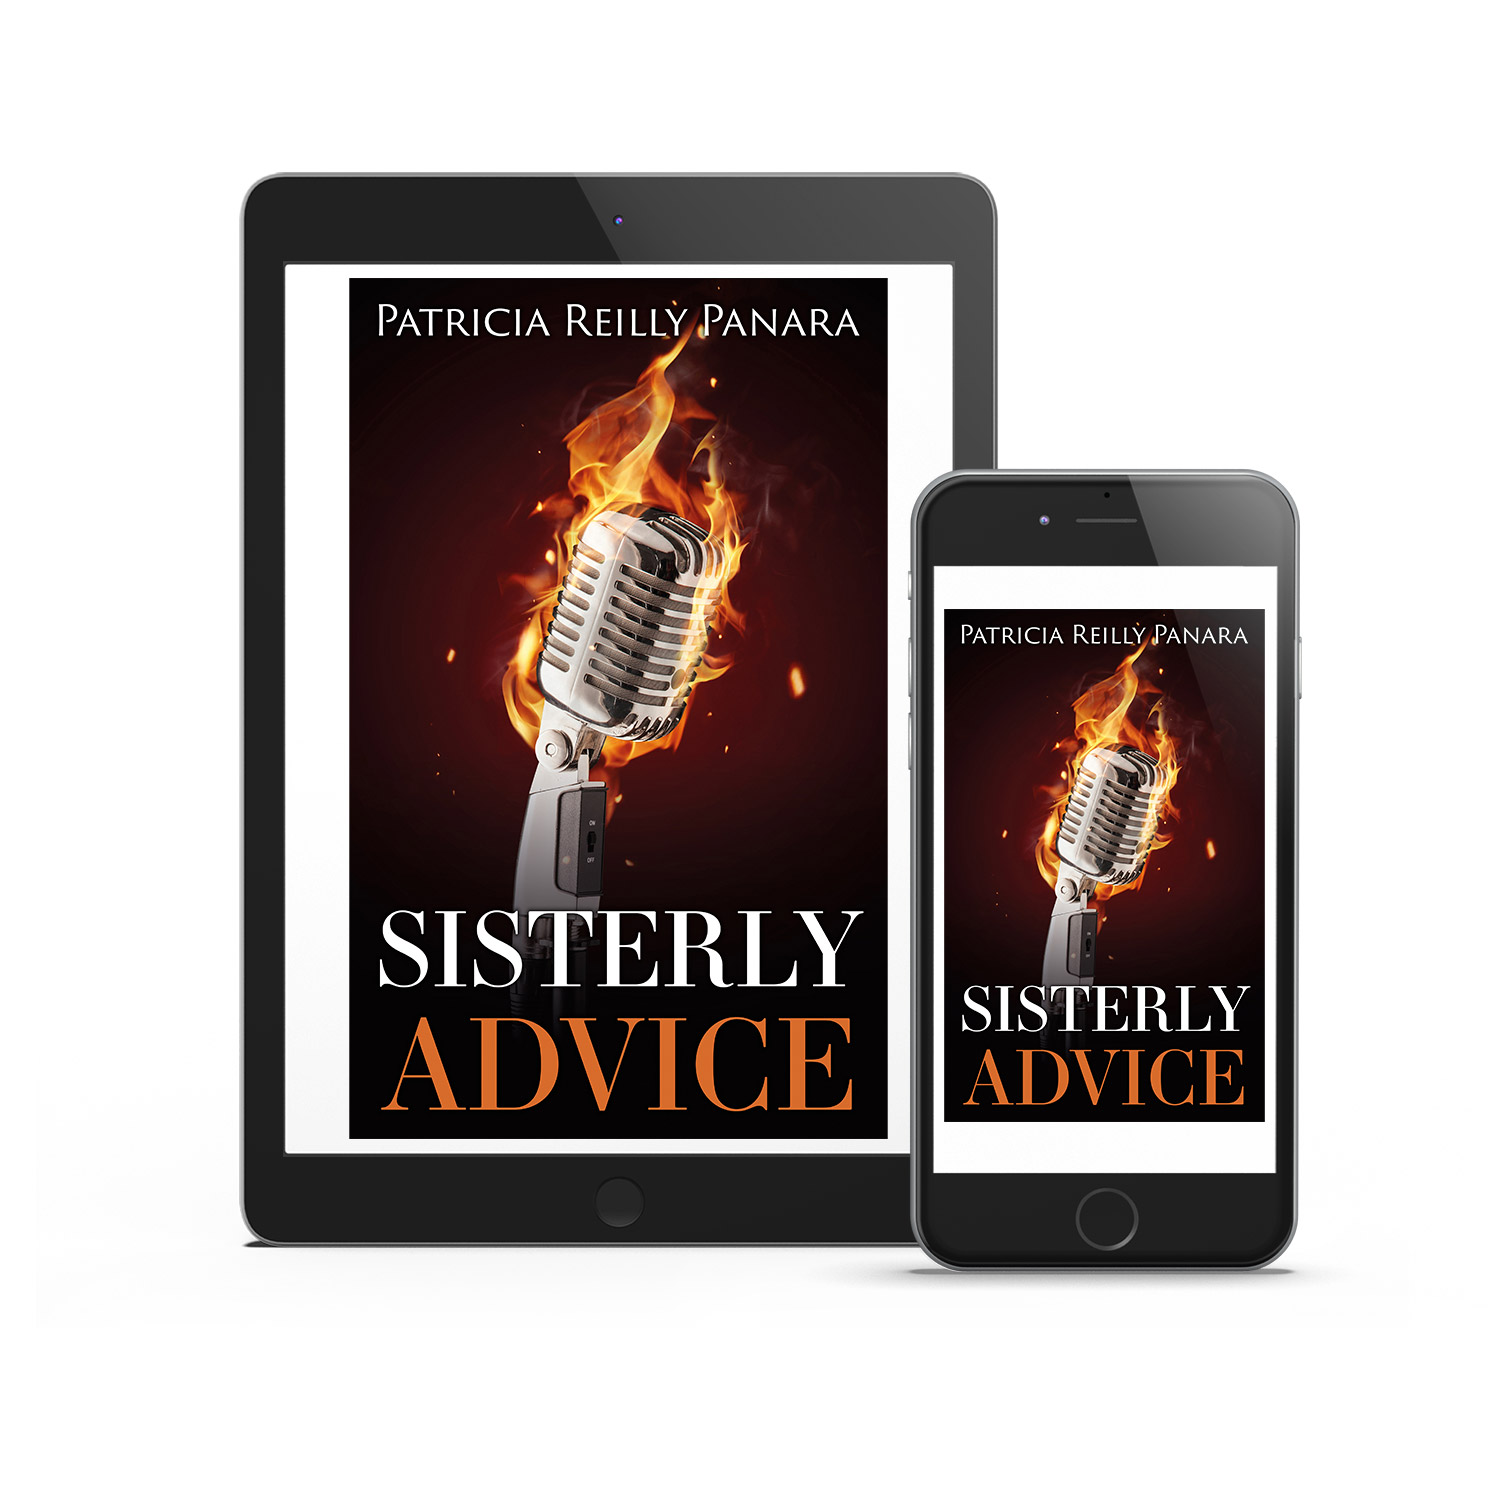 'Sisterly Advice' is the fictional, faith-based story of popular Nun DJ. The author is Patricia Reilly Panara. The book cover and interior were designed by Mark Thomas, of coverness.com. To find out more about my book design services, please visit www.coverness.com.